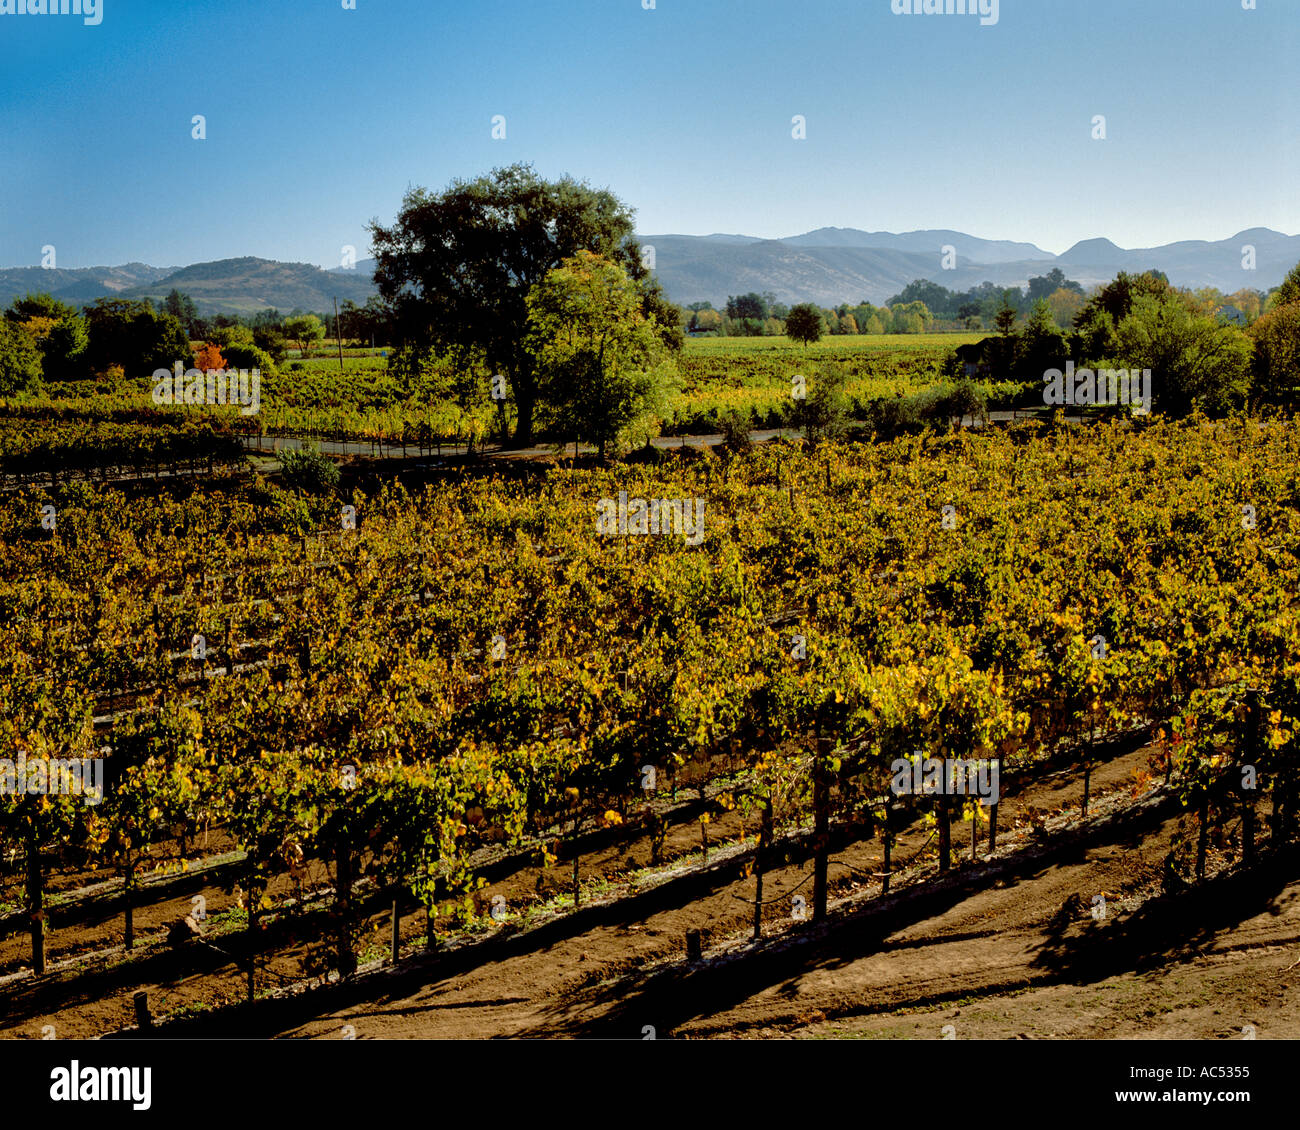 Flora Springs Winery >> GRAPE VINES of the Flora Springs Winery turn gold in the NAPA VALLEY Stock Photo, Royalty Free ...